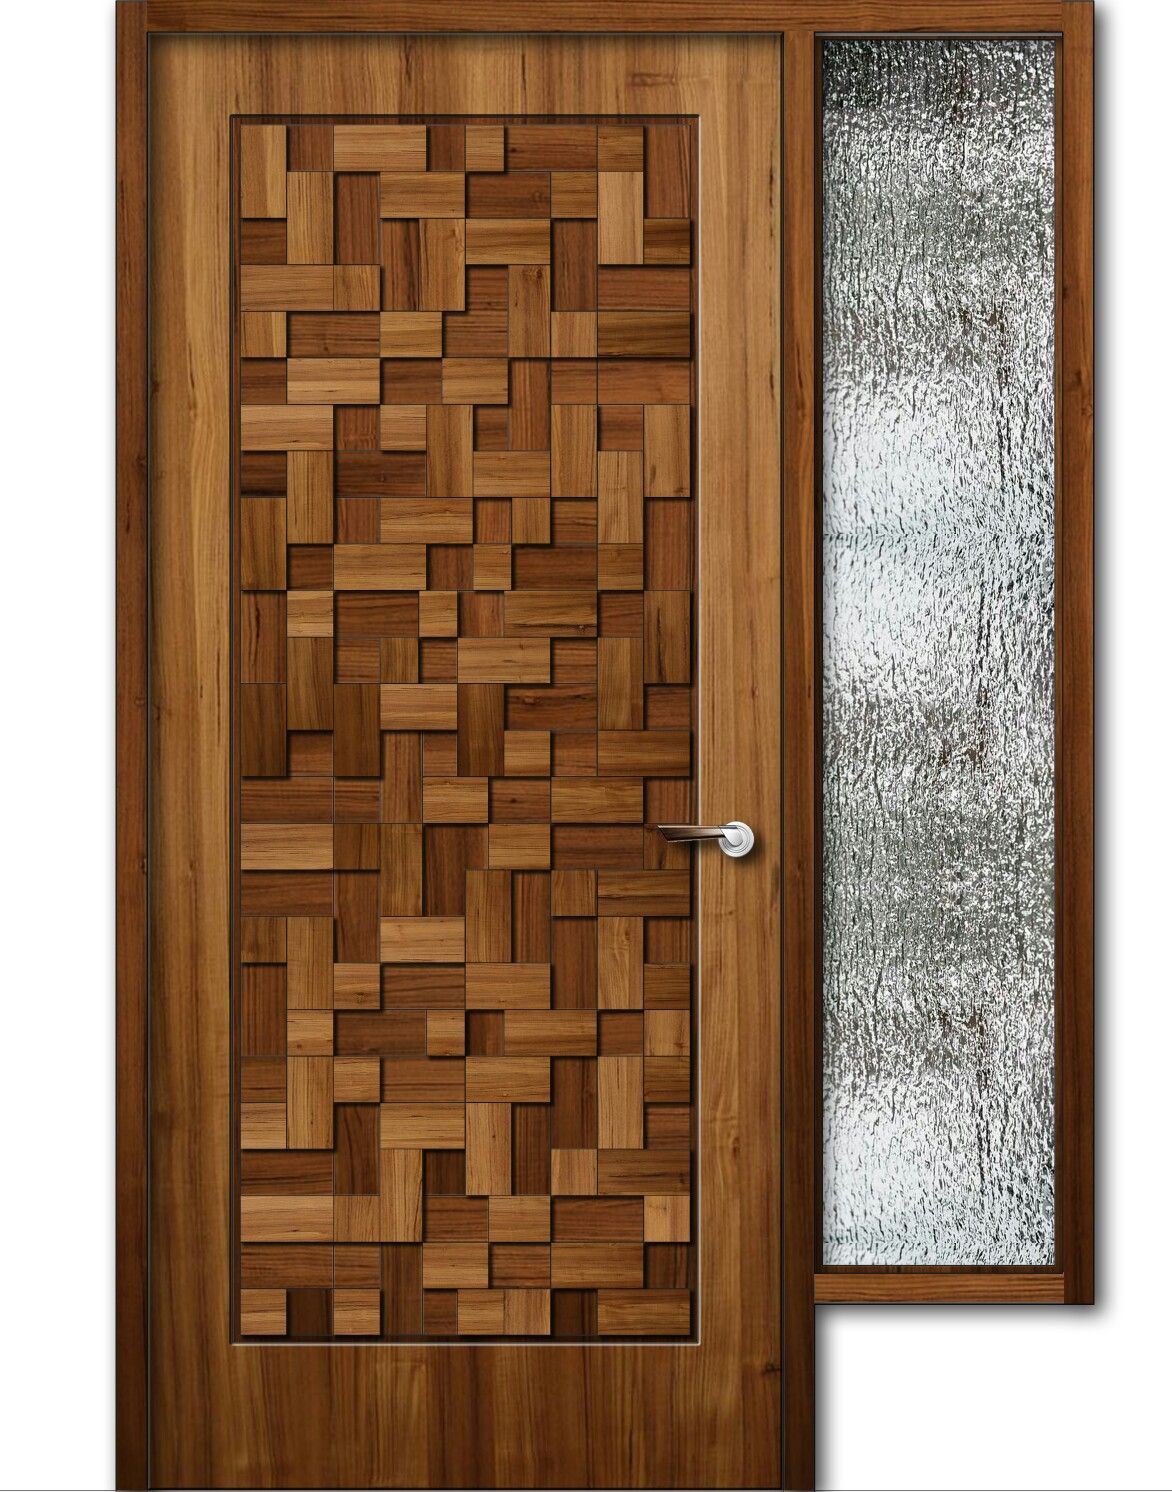 teak wood finish wooden door with window 8feet height